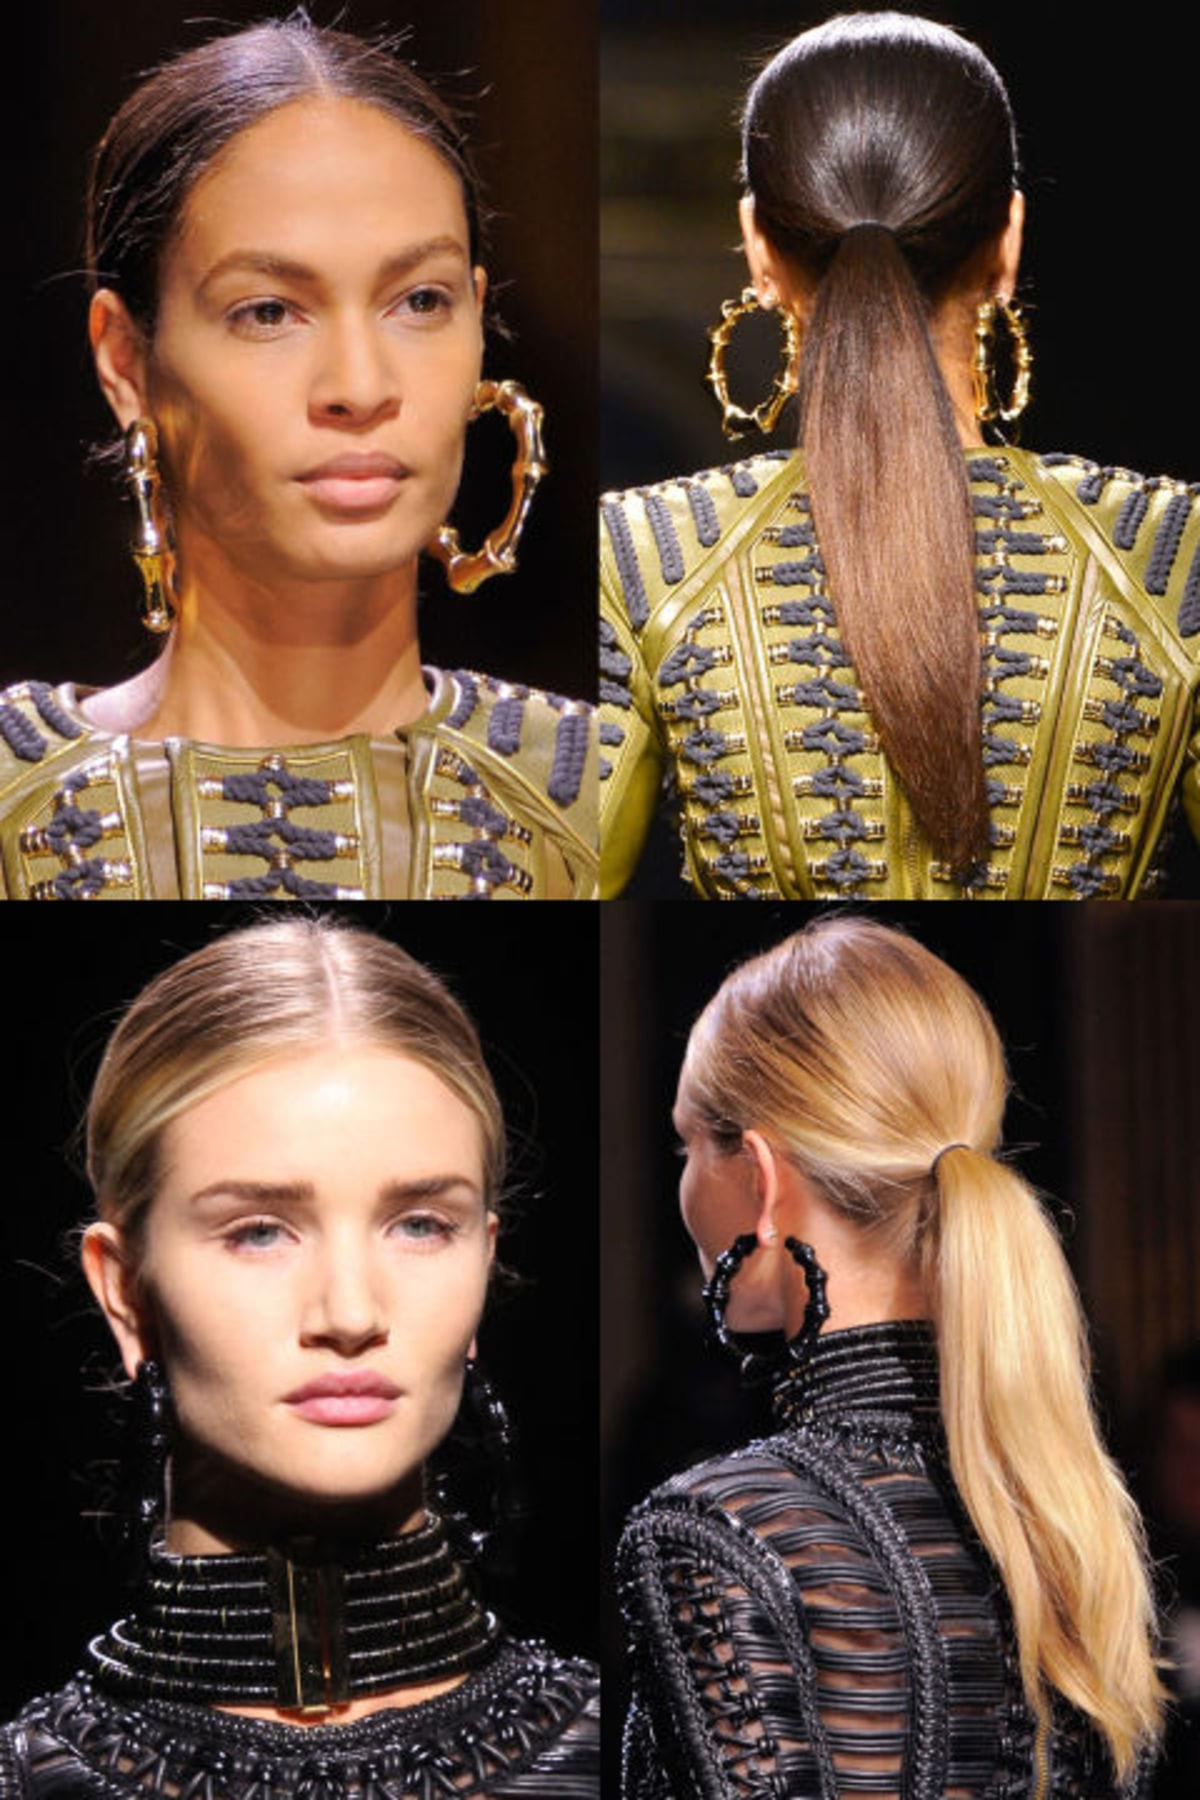 54bd0fa7851e1_-_hbz-the-list-ponytails-07-balmain